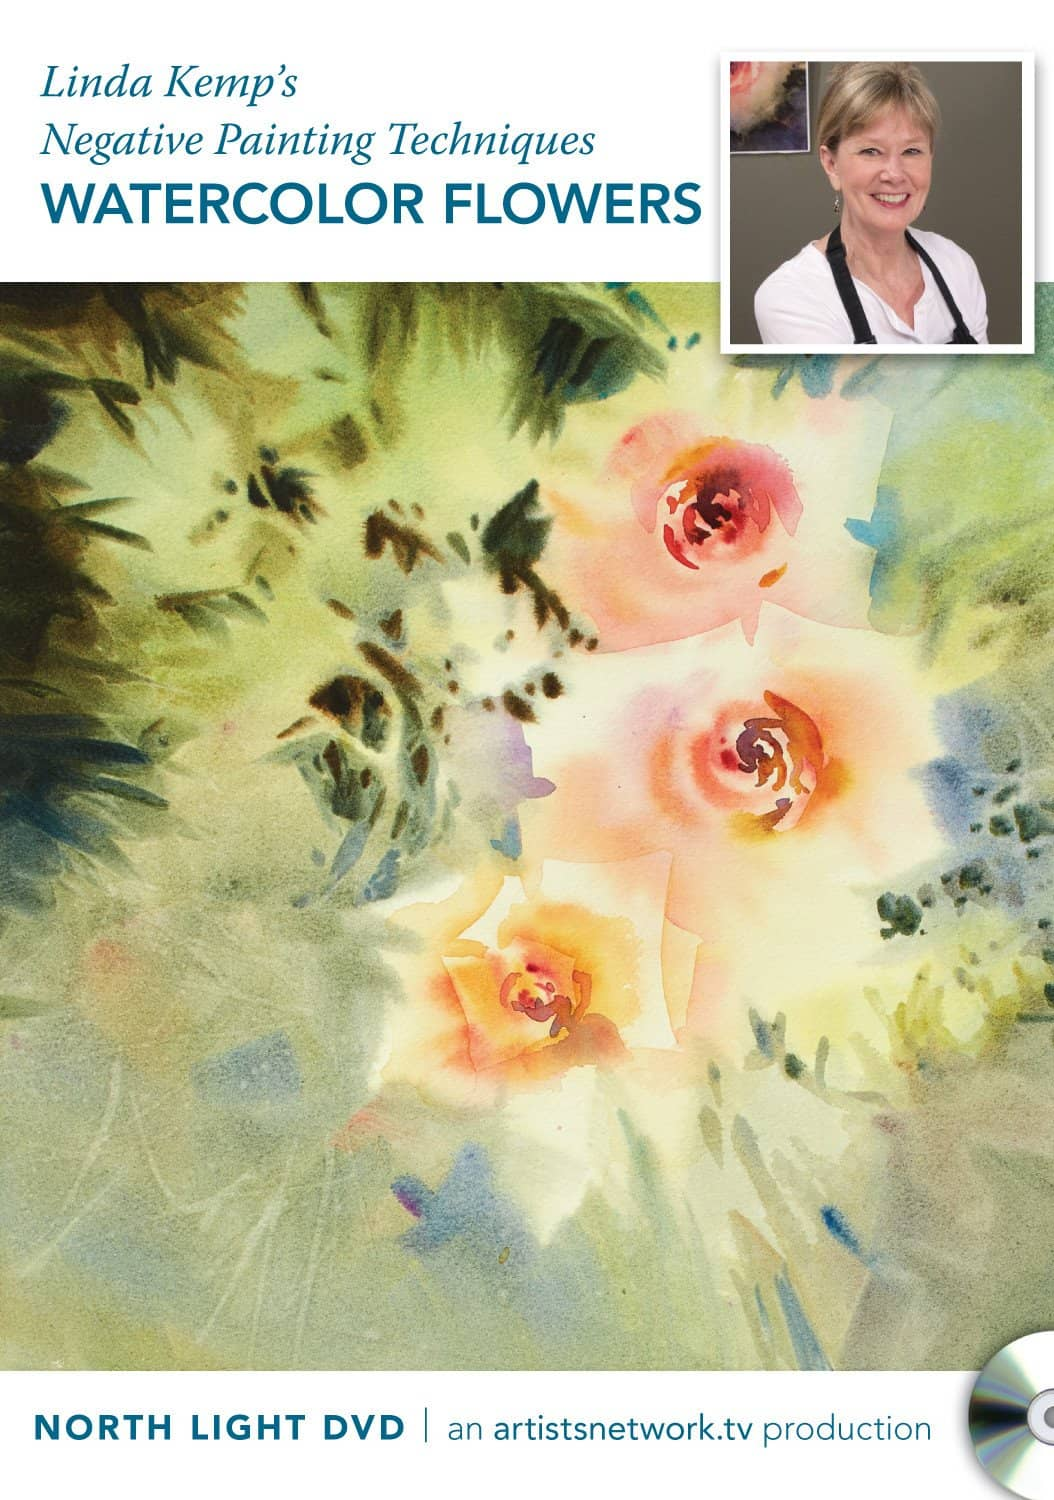 Negative Painting Techniques:  Watercolor Flowers with Linda Kemp